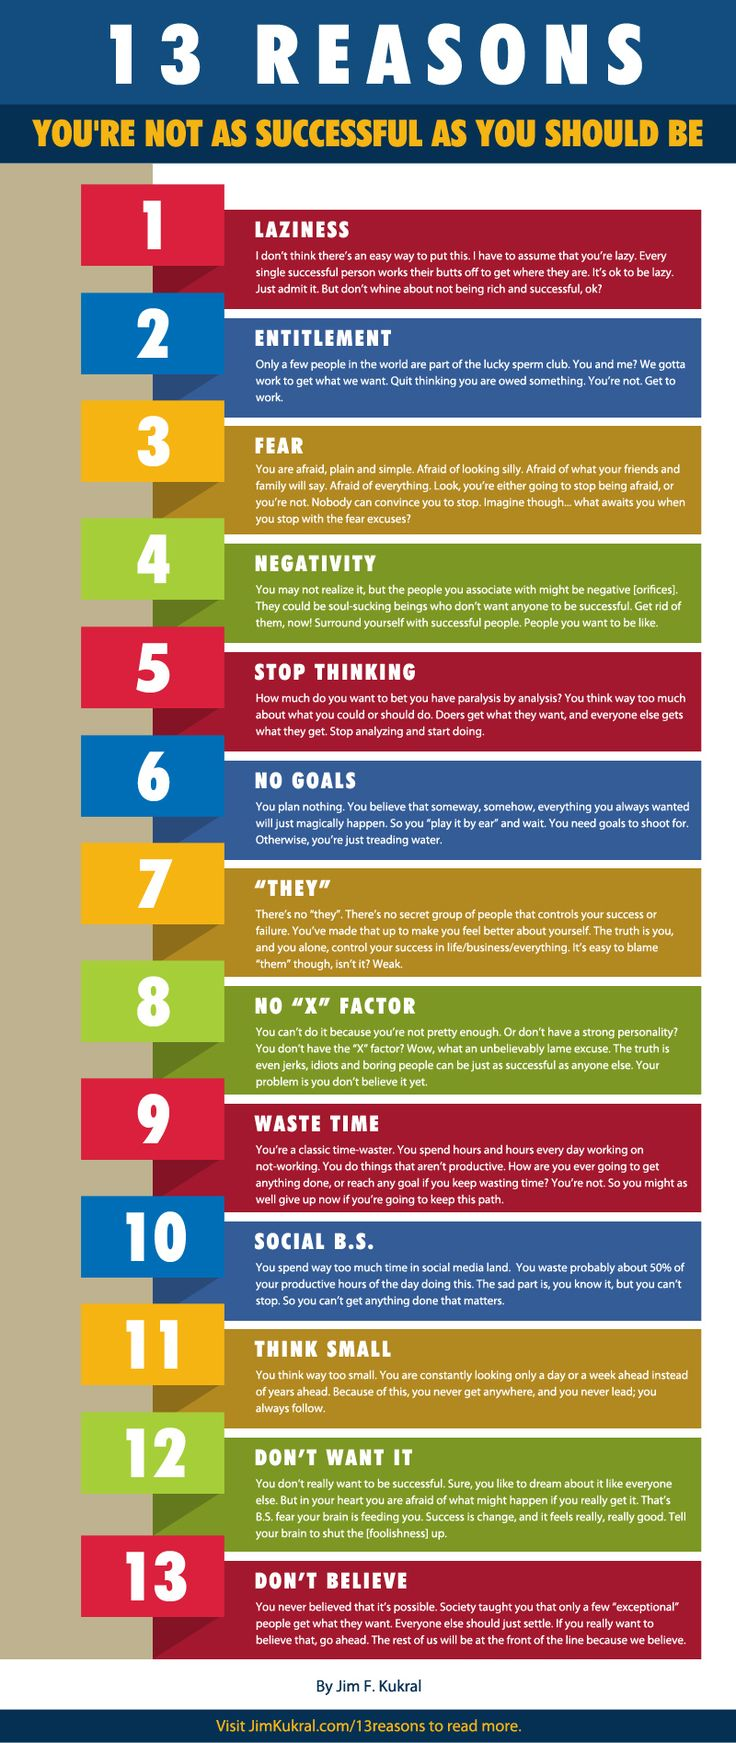 Interesting 13 Reasons You Are Not Successful as You Should Be #infographic...May or may not apply to you.